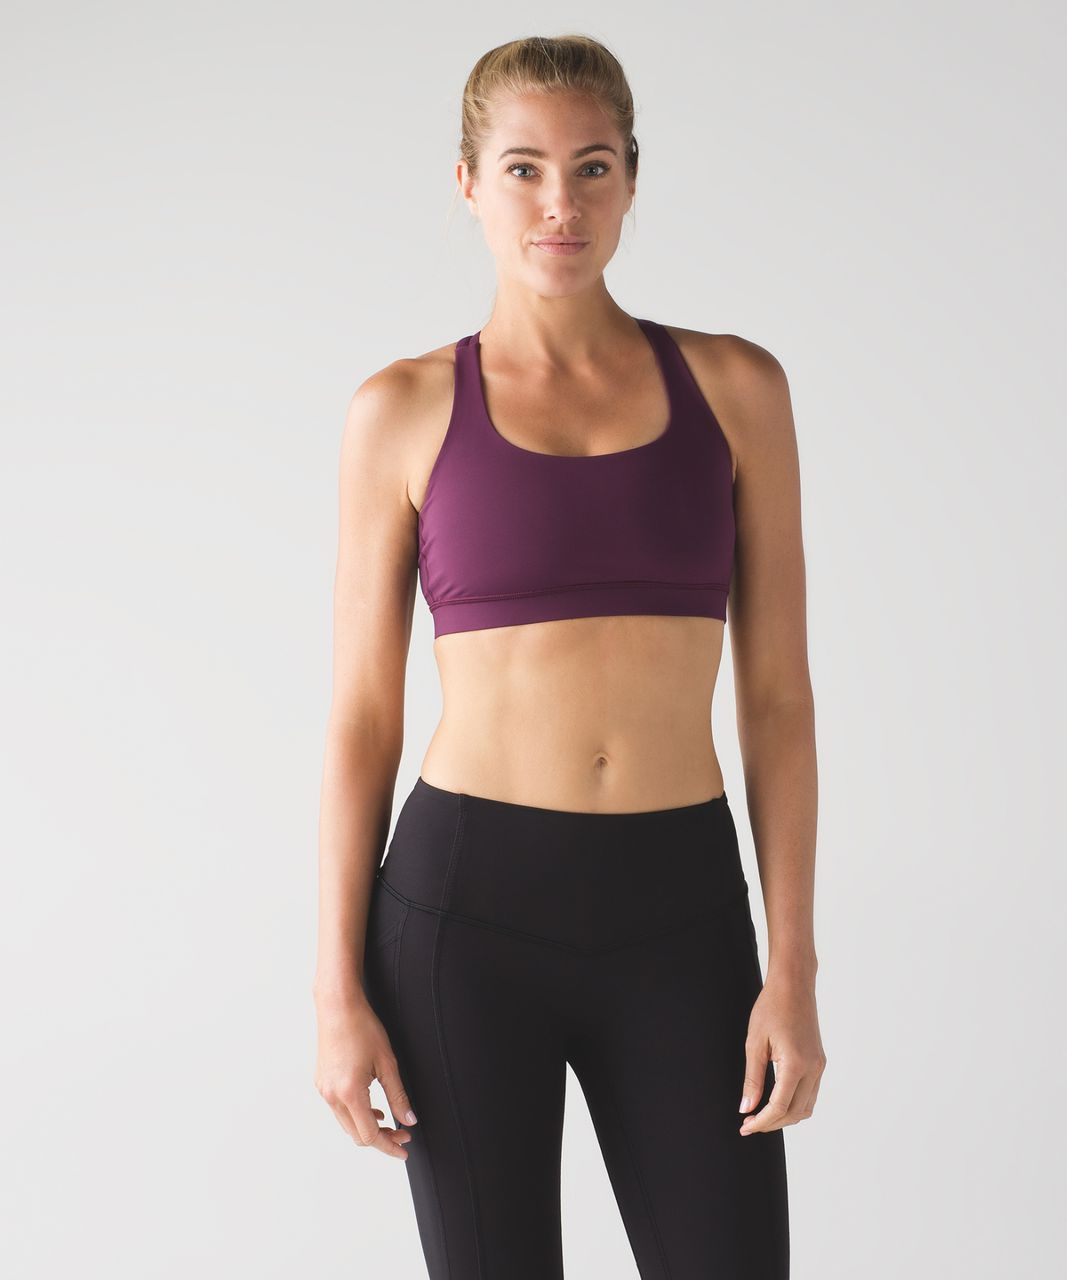 Lululemon Energy Bra - Plum